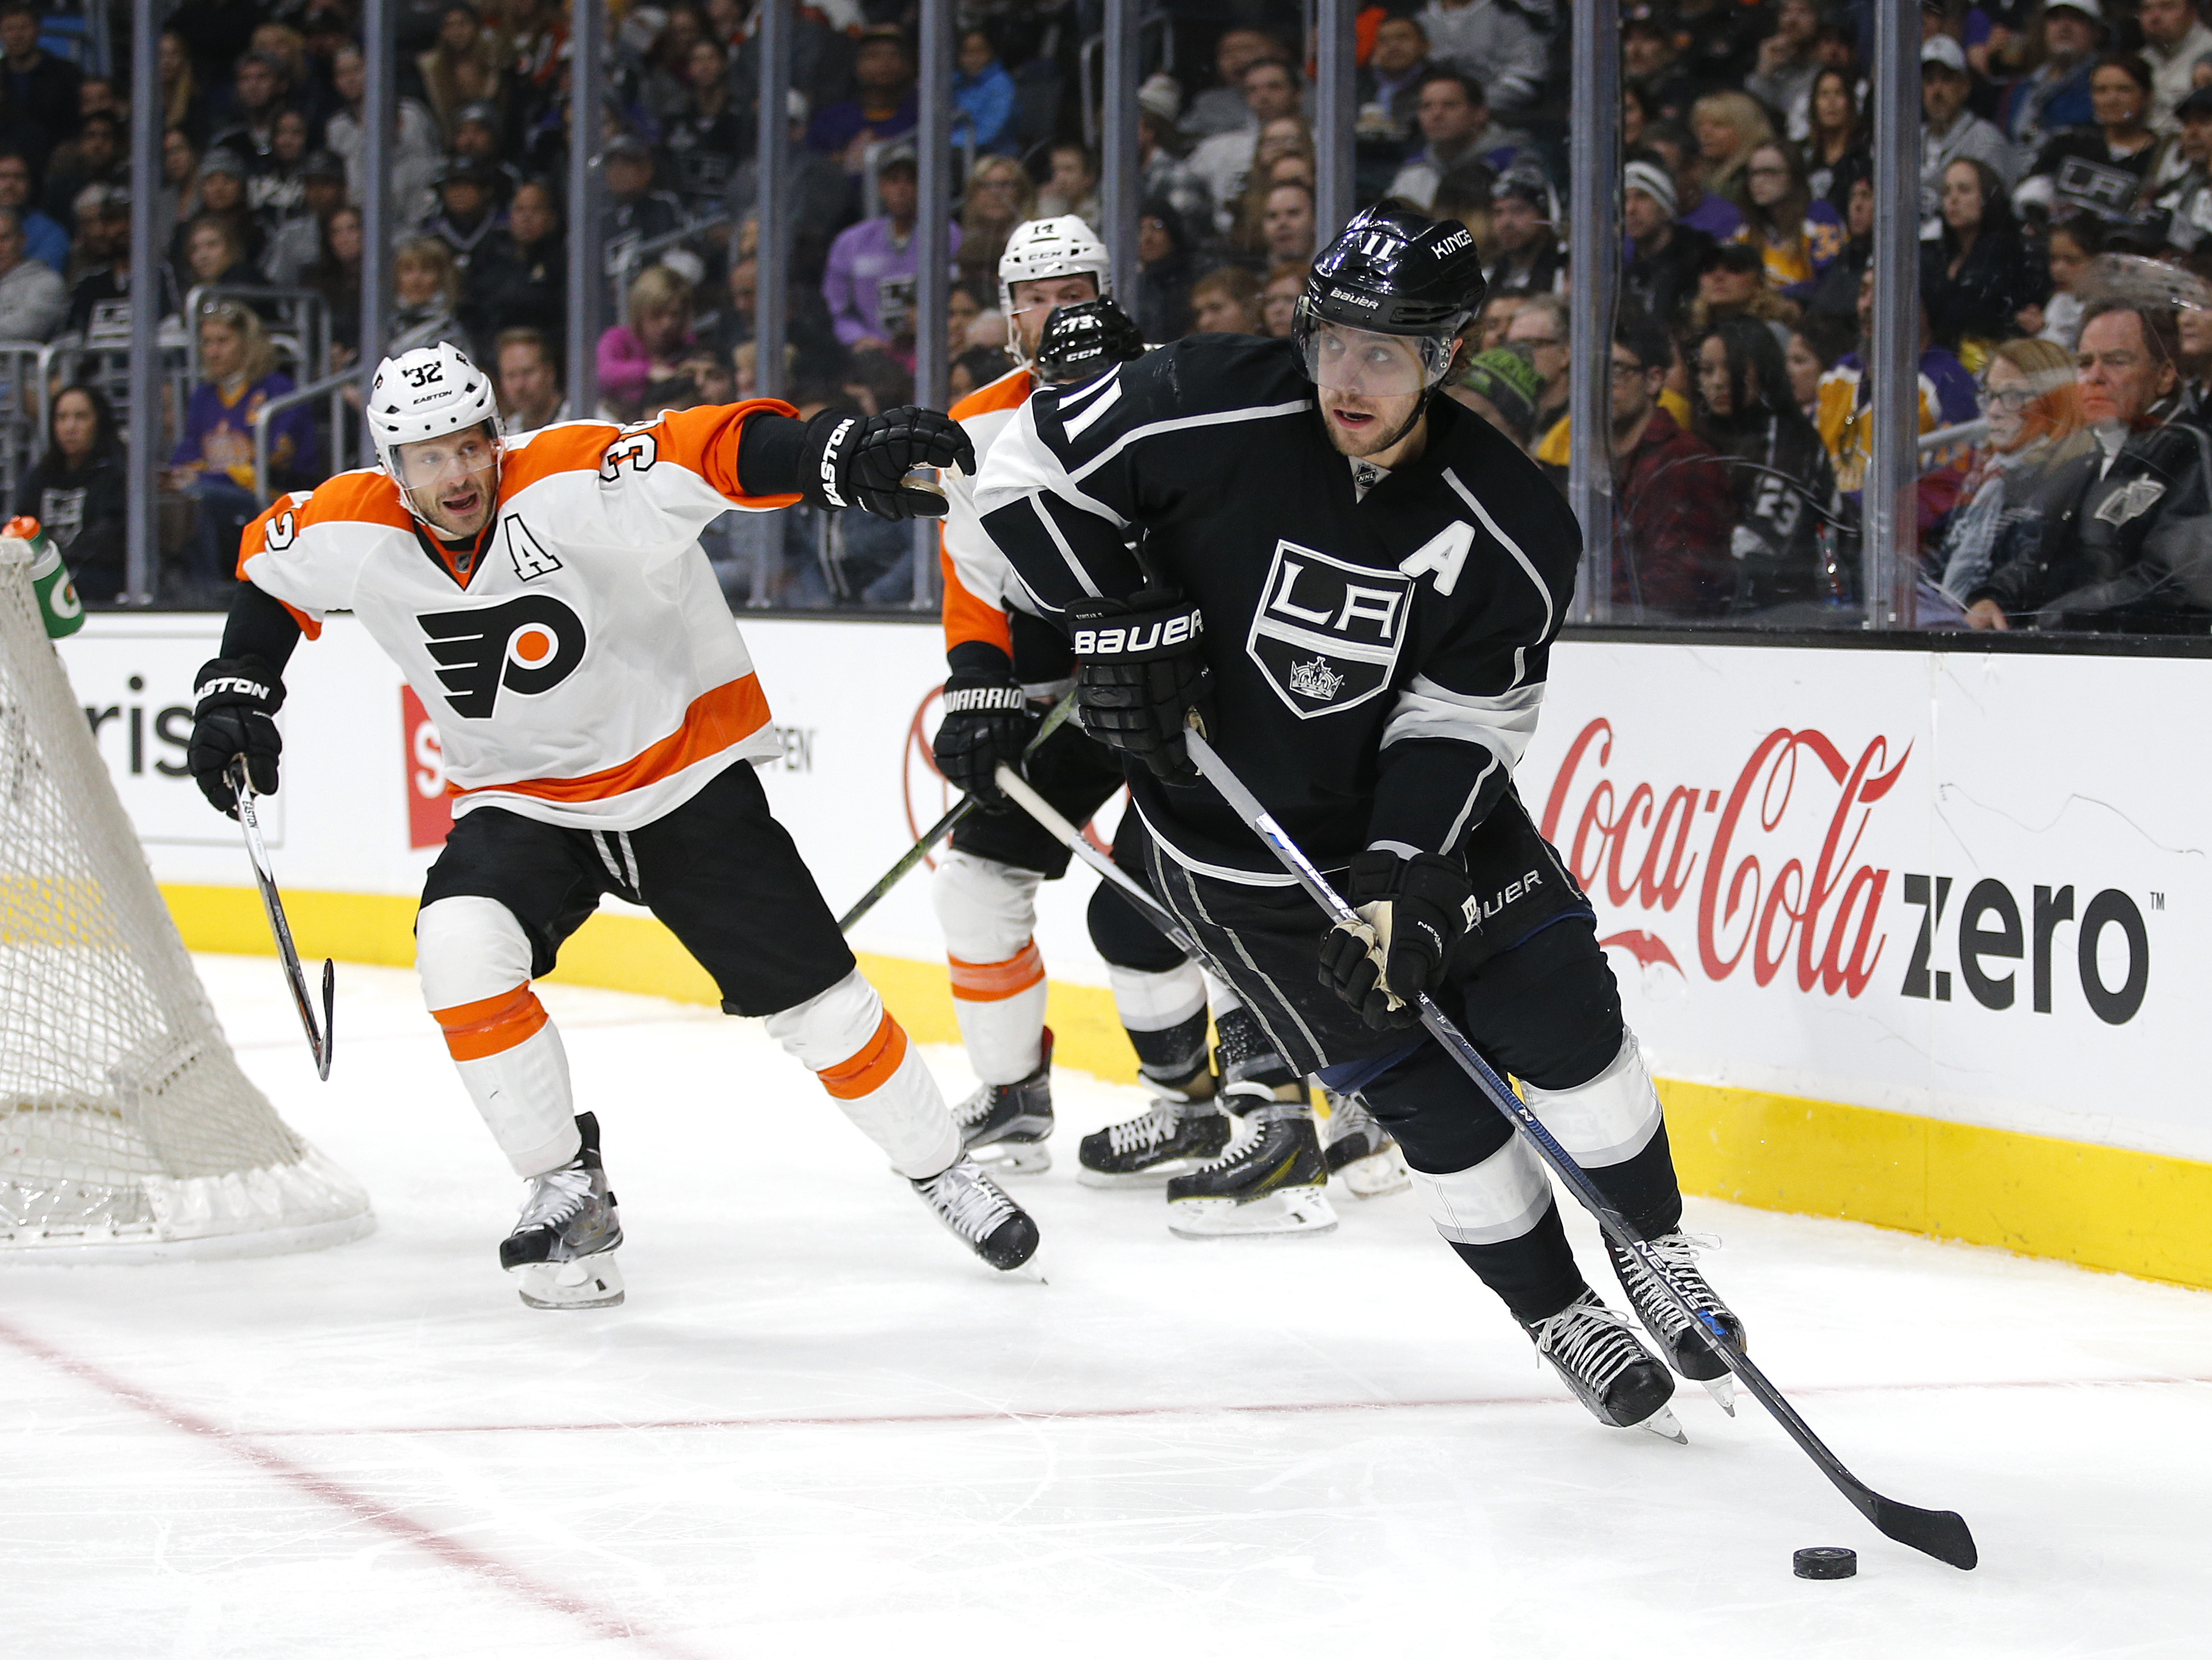 Los Angeles Kings' Anze Kopitar, right, of Slovenia, moves the puck past Philadelphia Flyers' Mark Streit, of Switzerland, during the second period of an NHL hockey game, Saturday, Jan. 2, 2016, in Los Angeles. (AP Photo/Jae C. Hong)